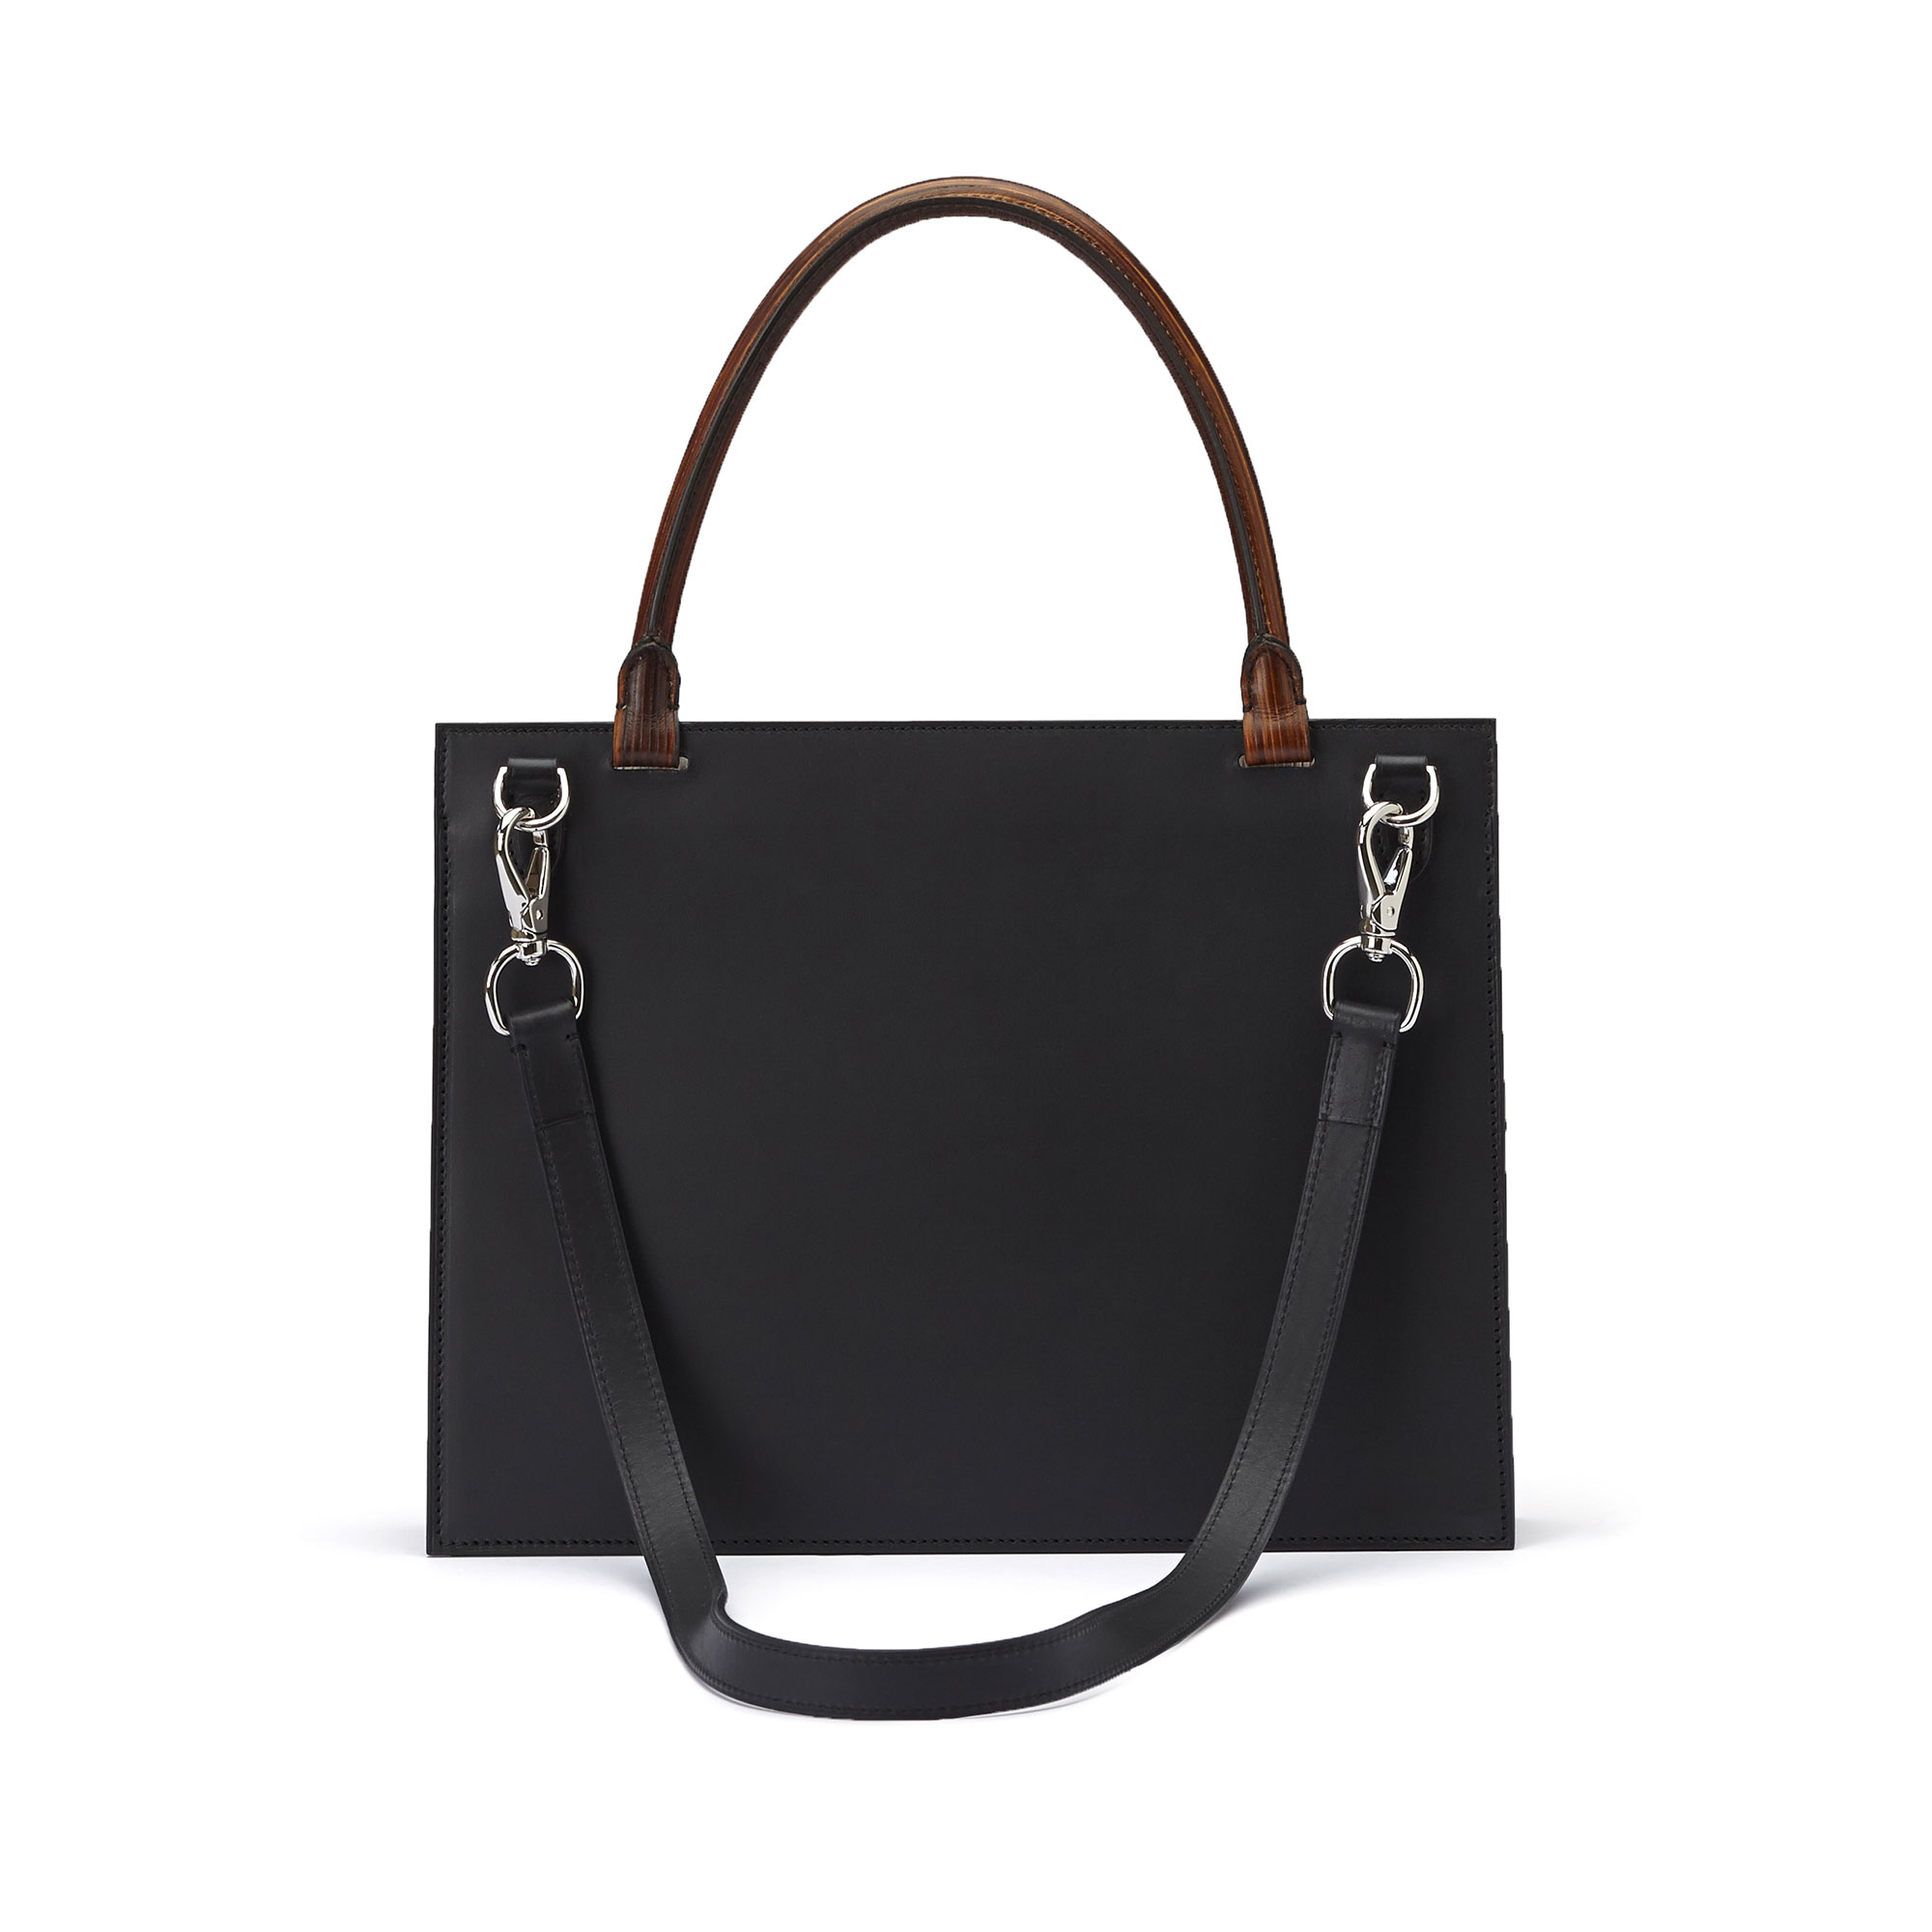 The black and brown wood leather, french calf Dafne bag by Bertoni 1949 03